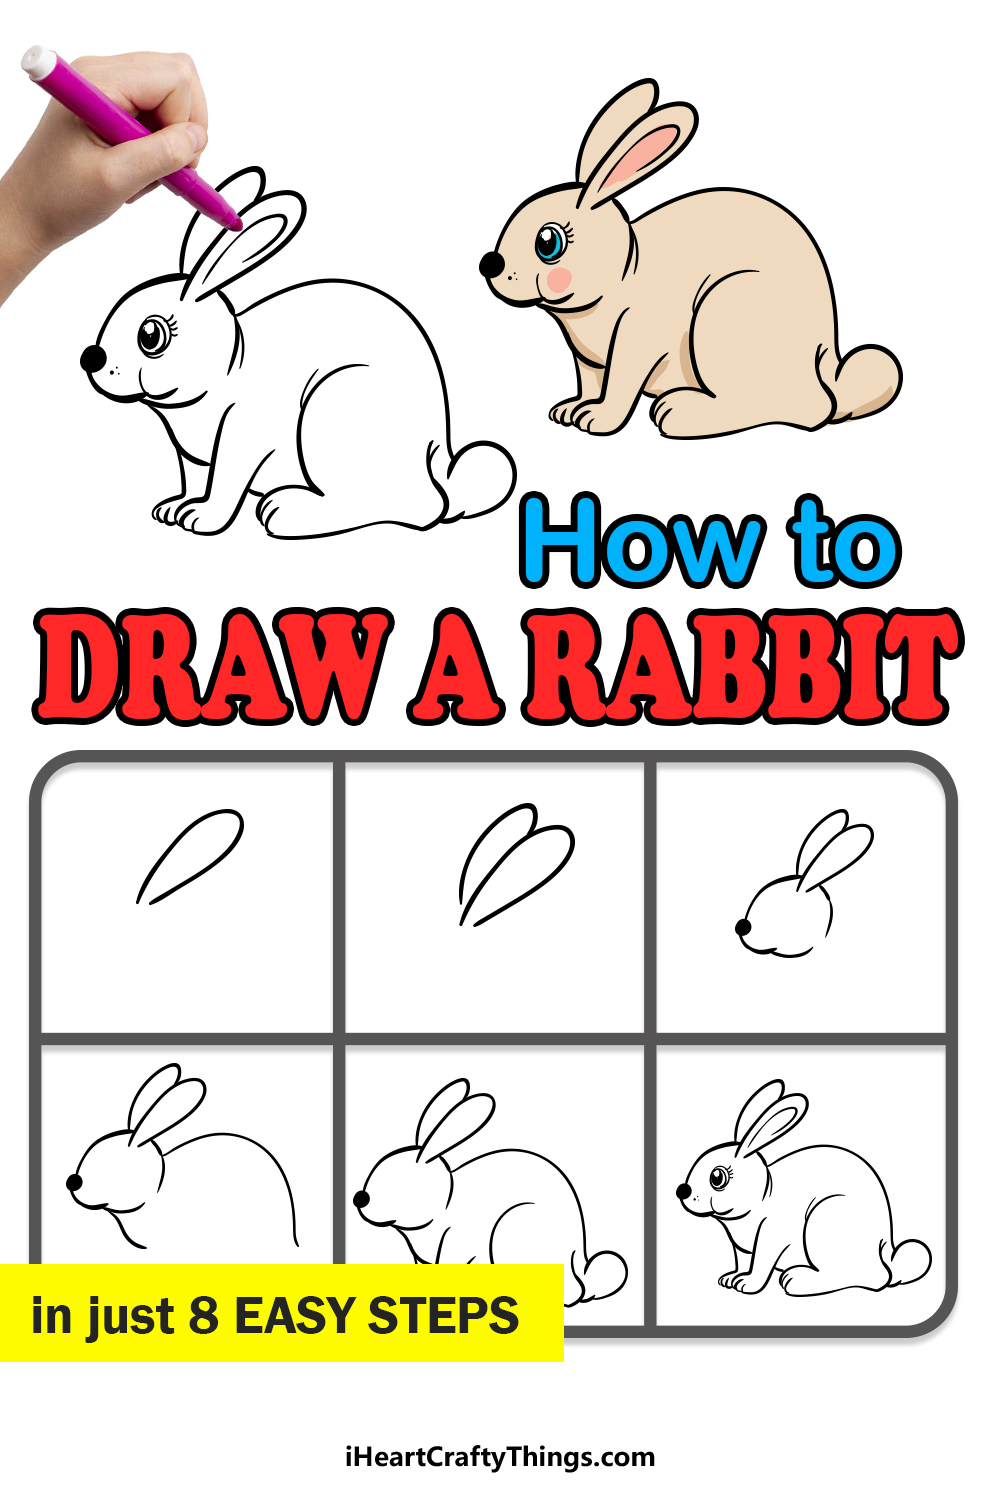 how to draw a rabbit in 8 easy steps